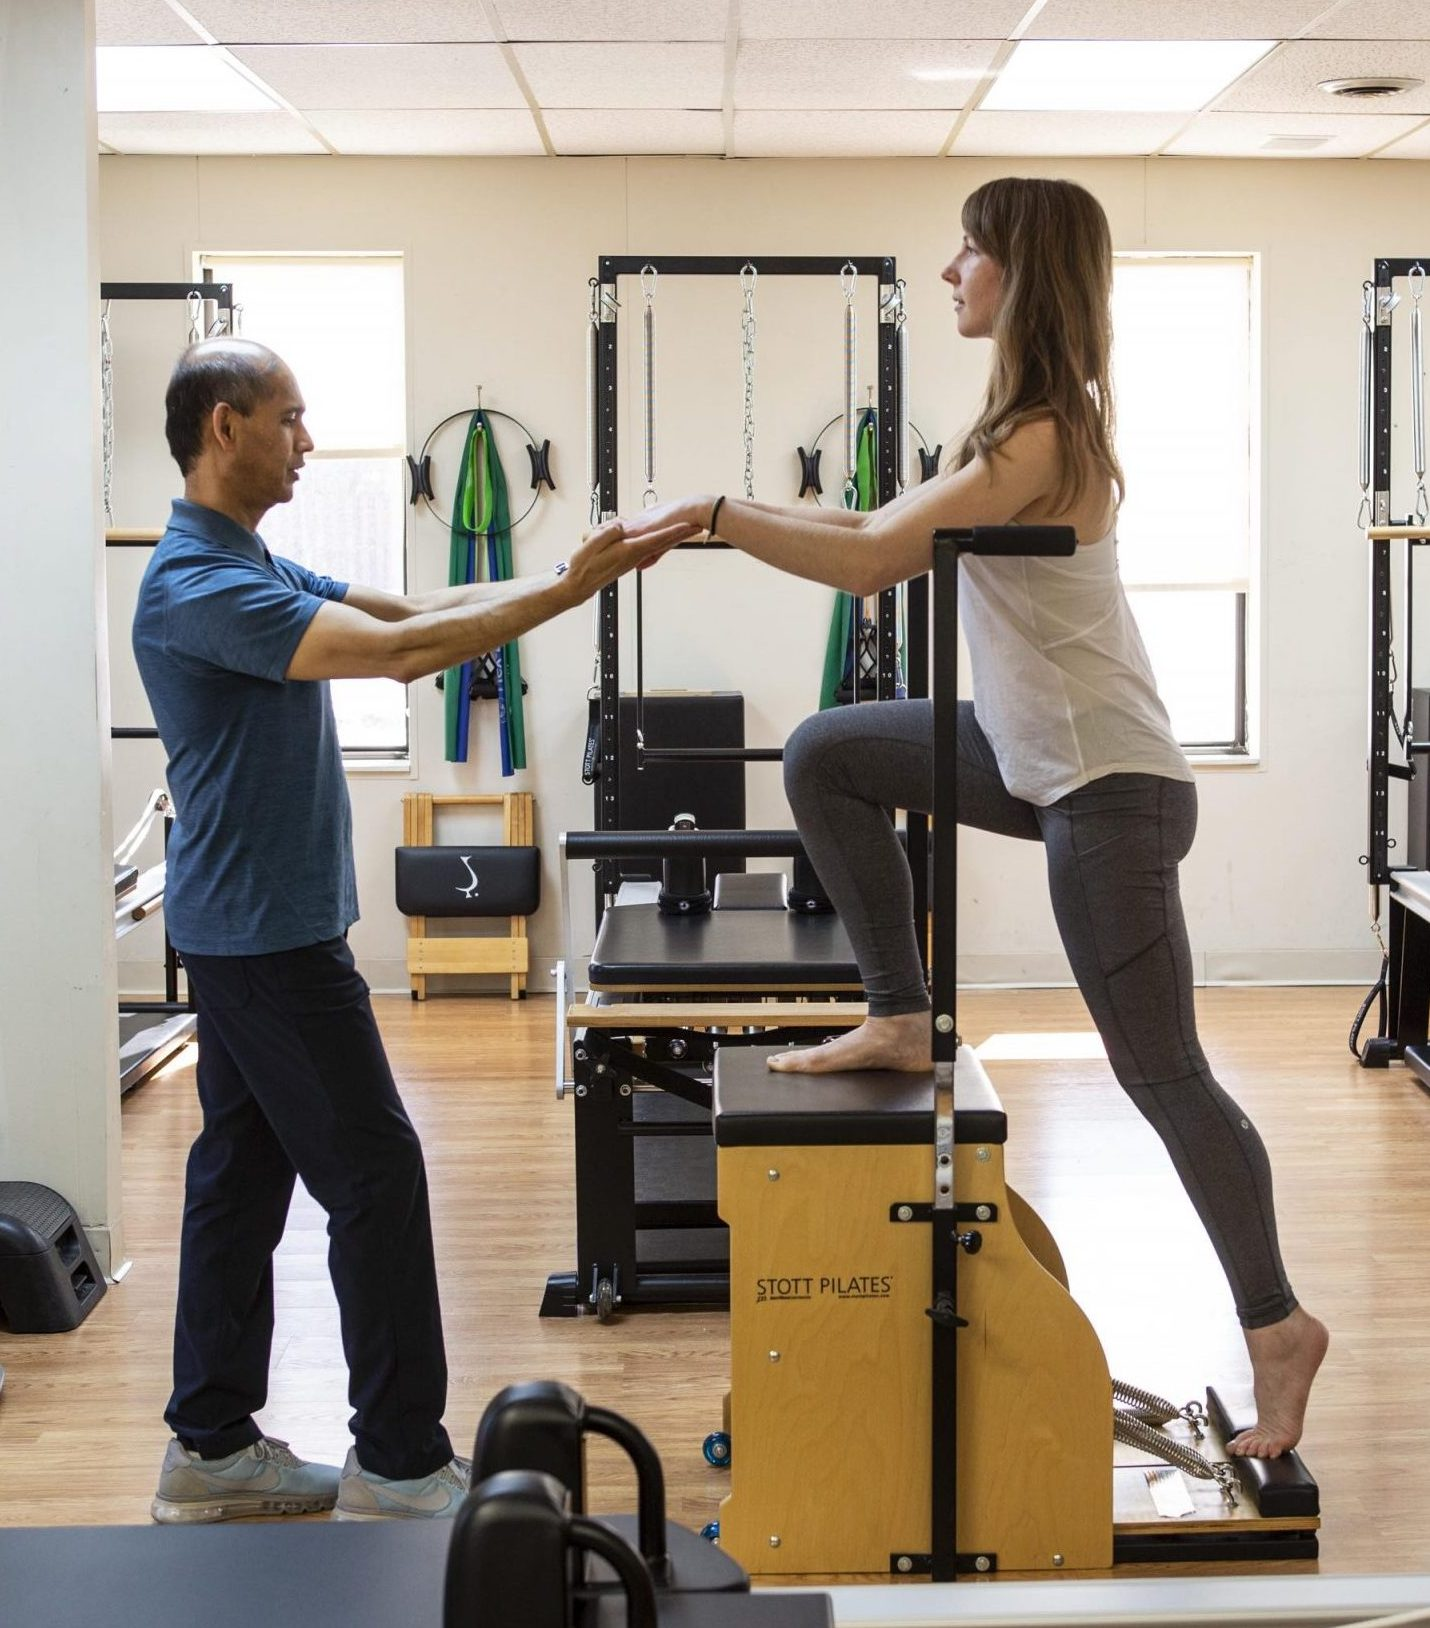 The Benefits of Pilates After Knee Surgery